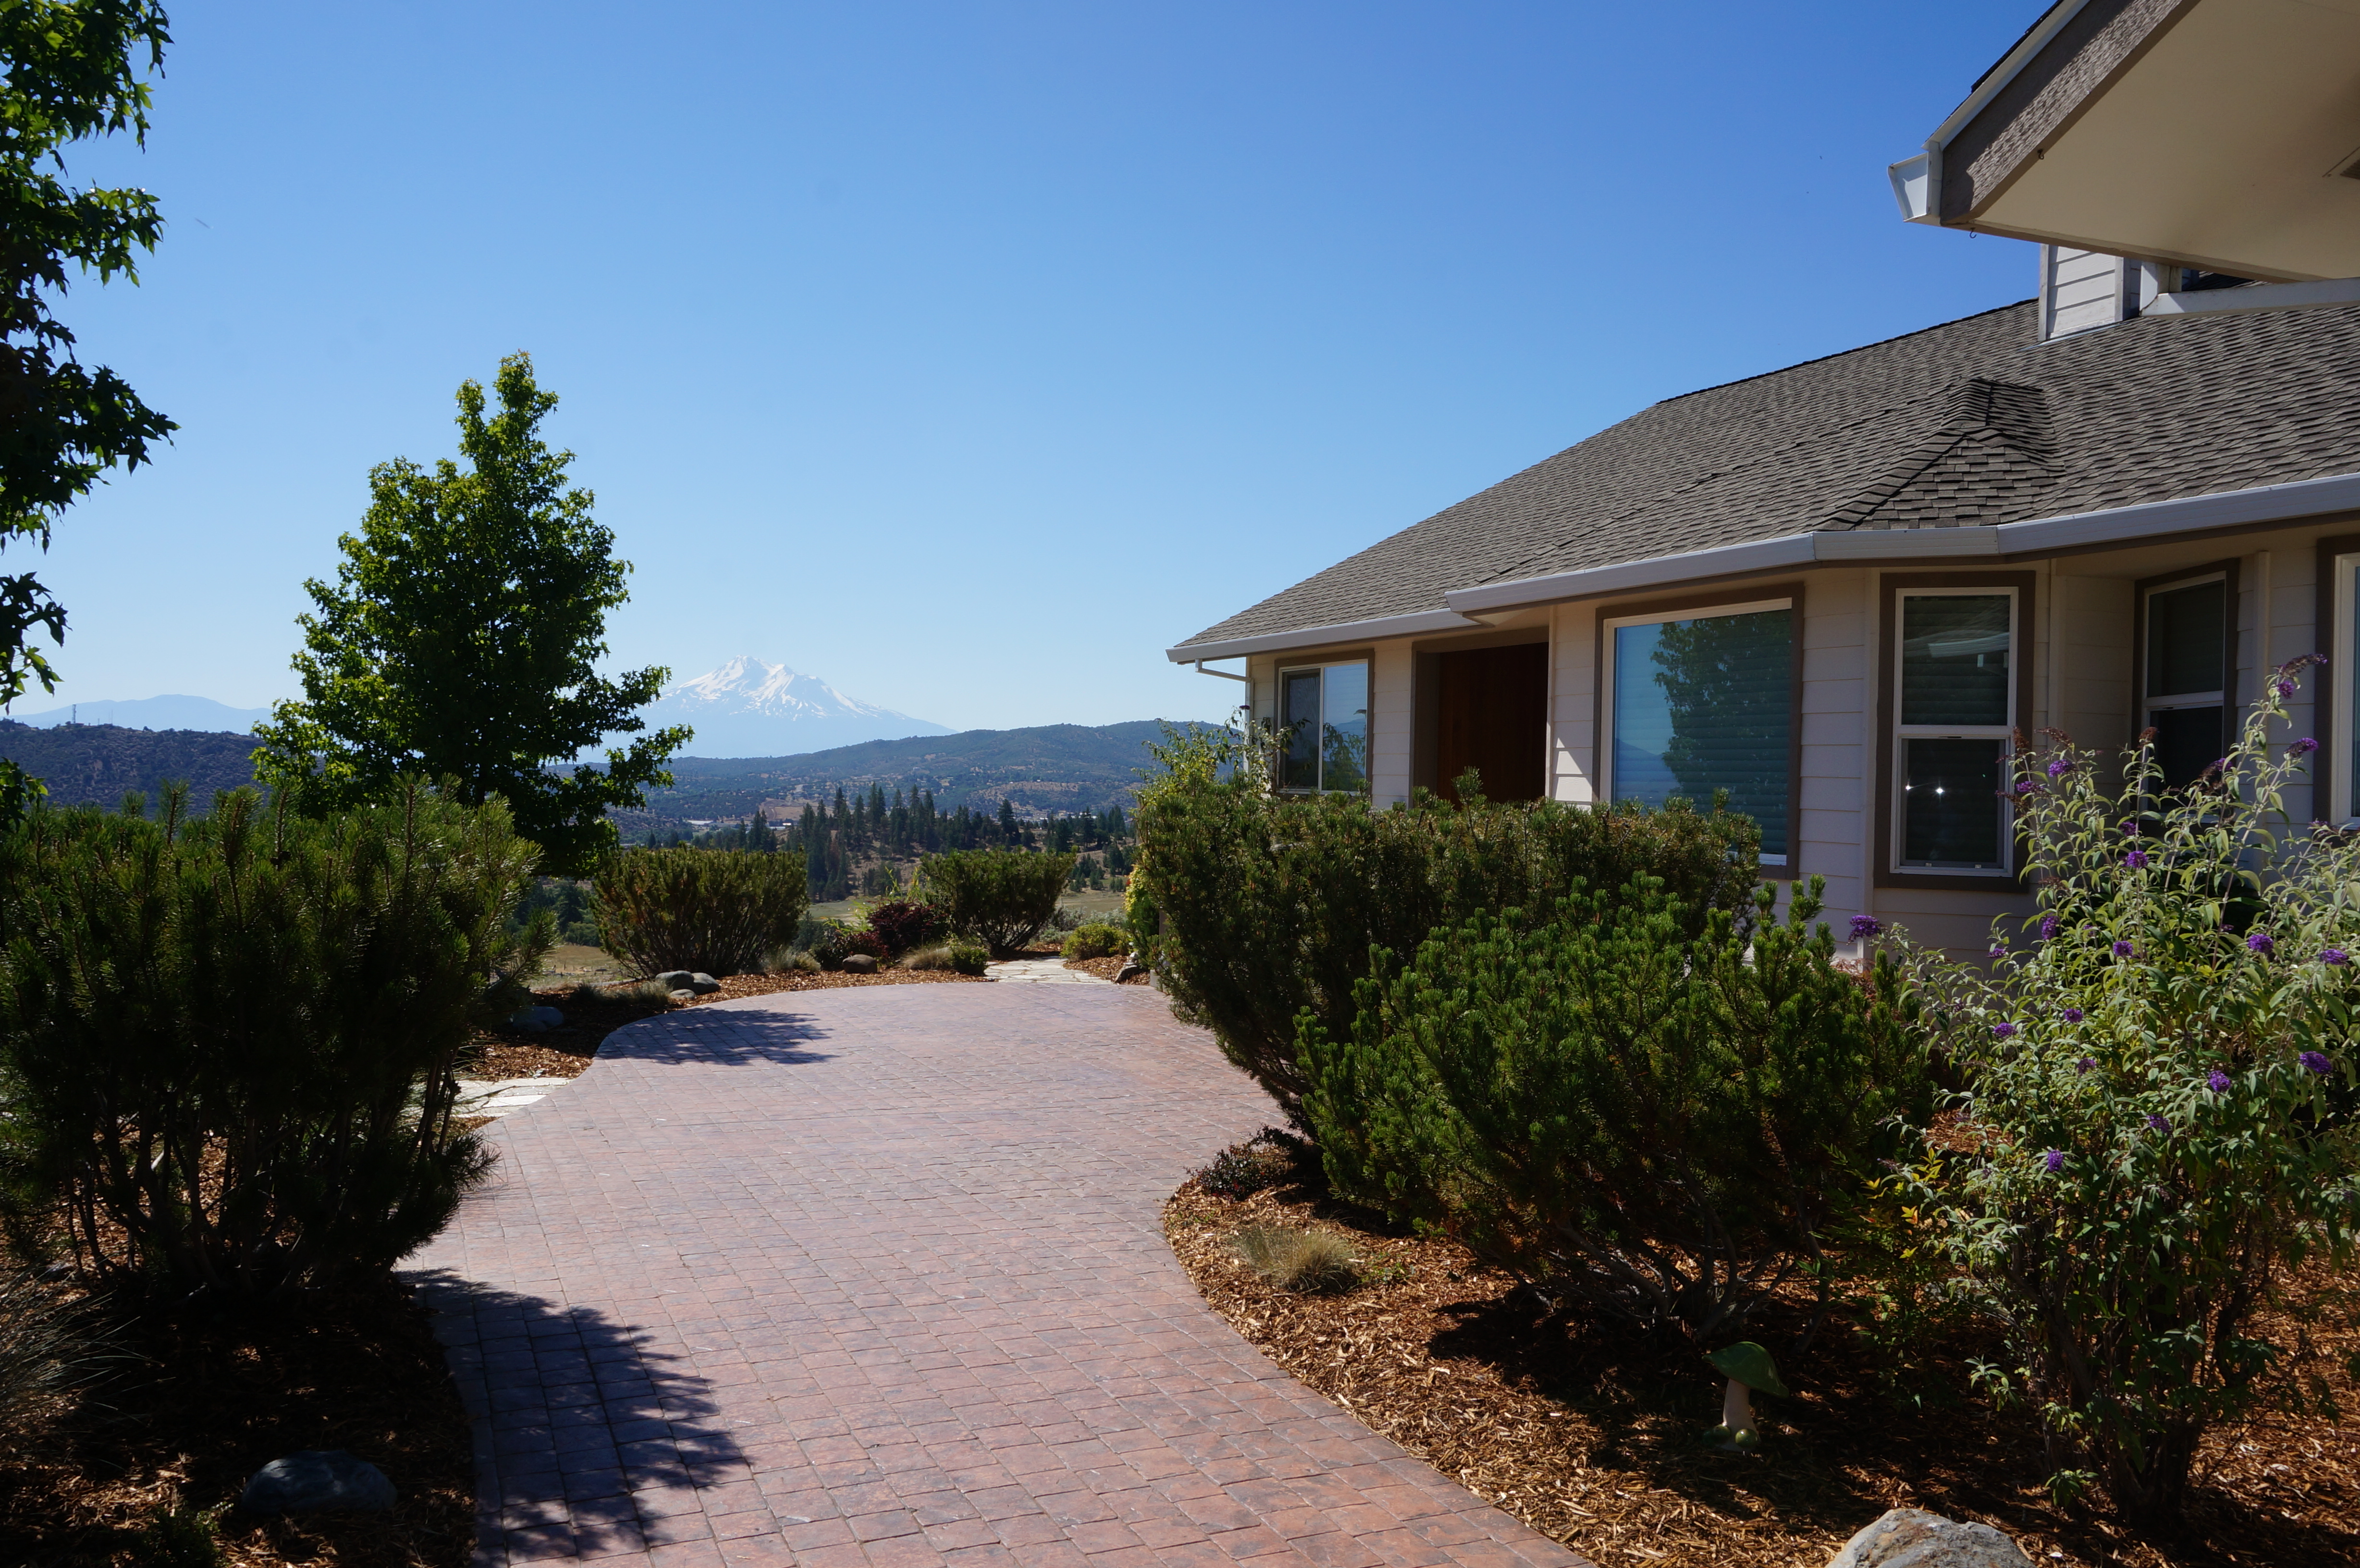 Yreka HiEnd Properties | Lane street Lux home pool and acreage